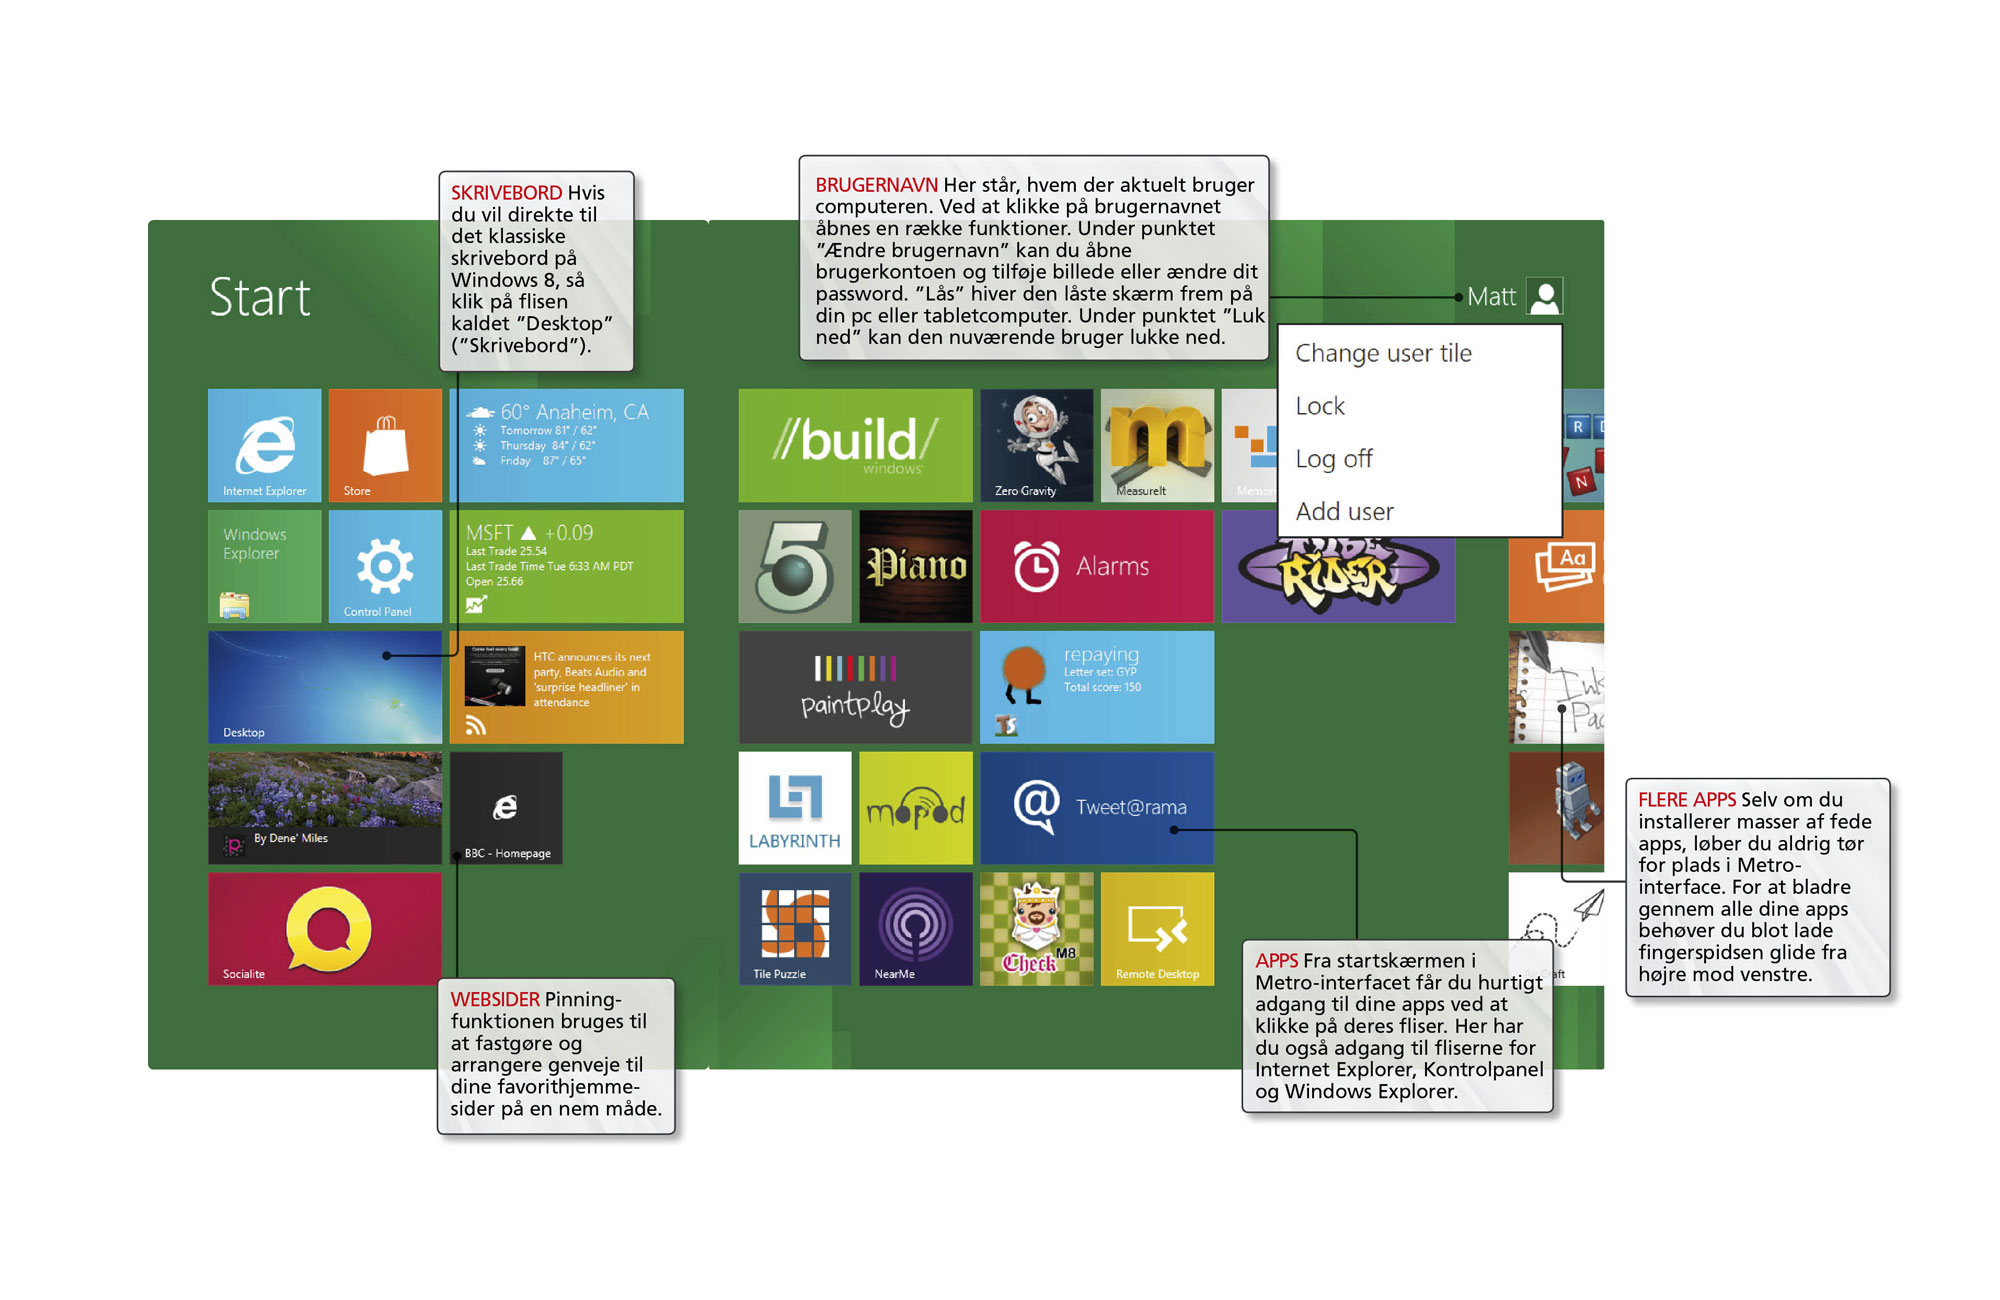 Den komplette guide til Windows 8